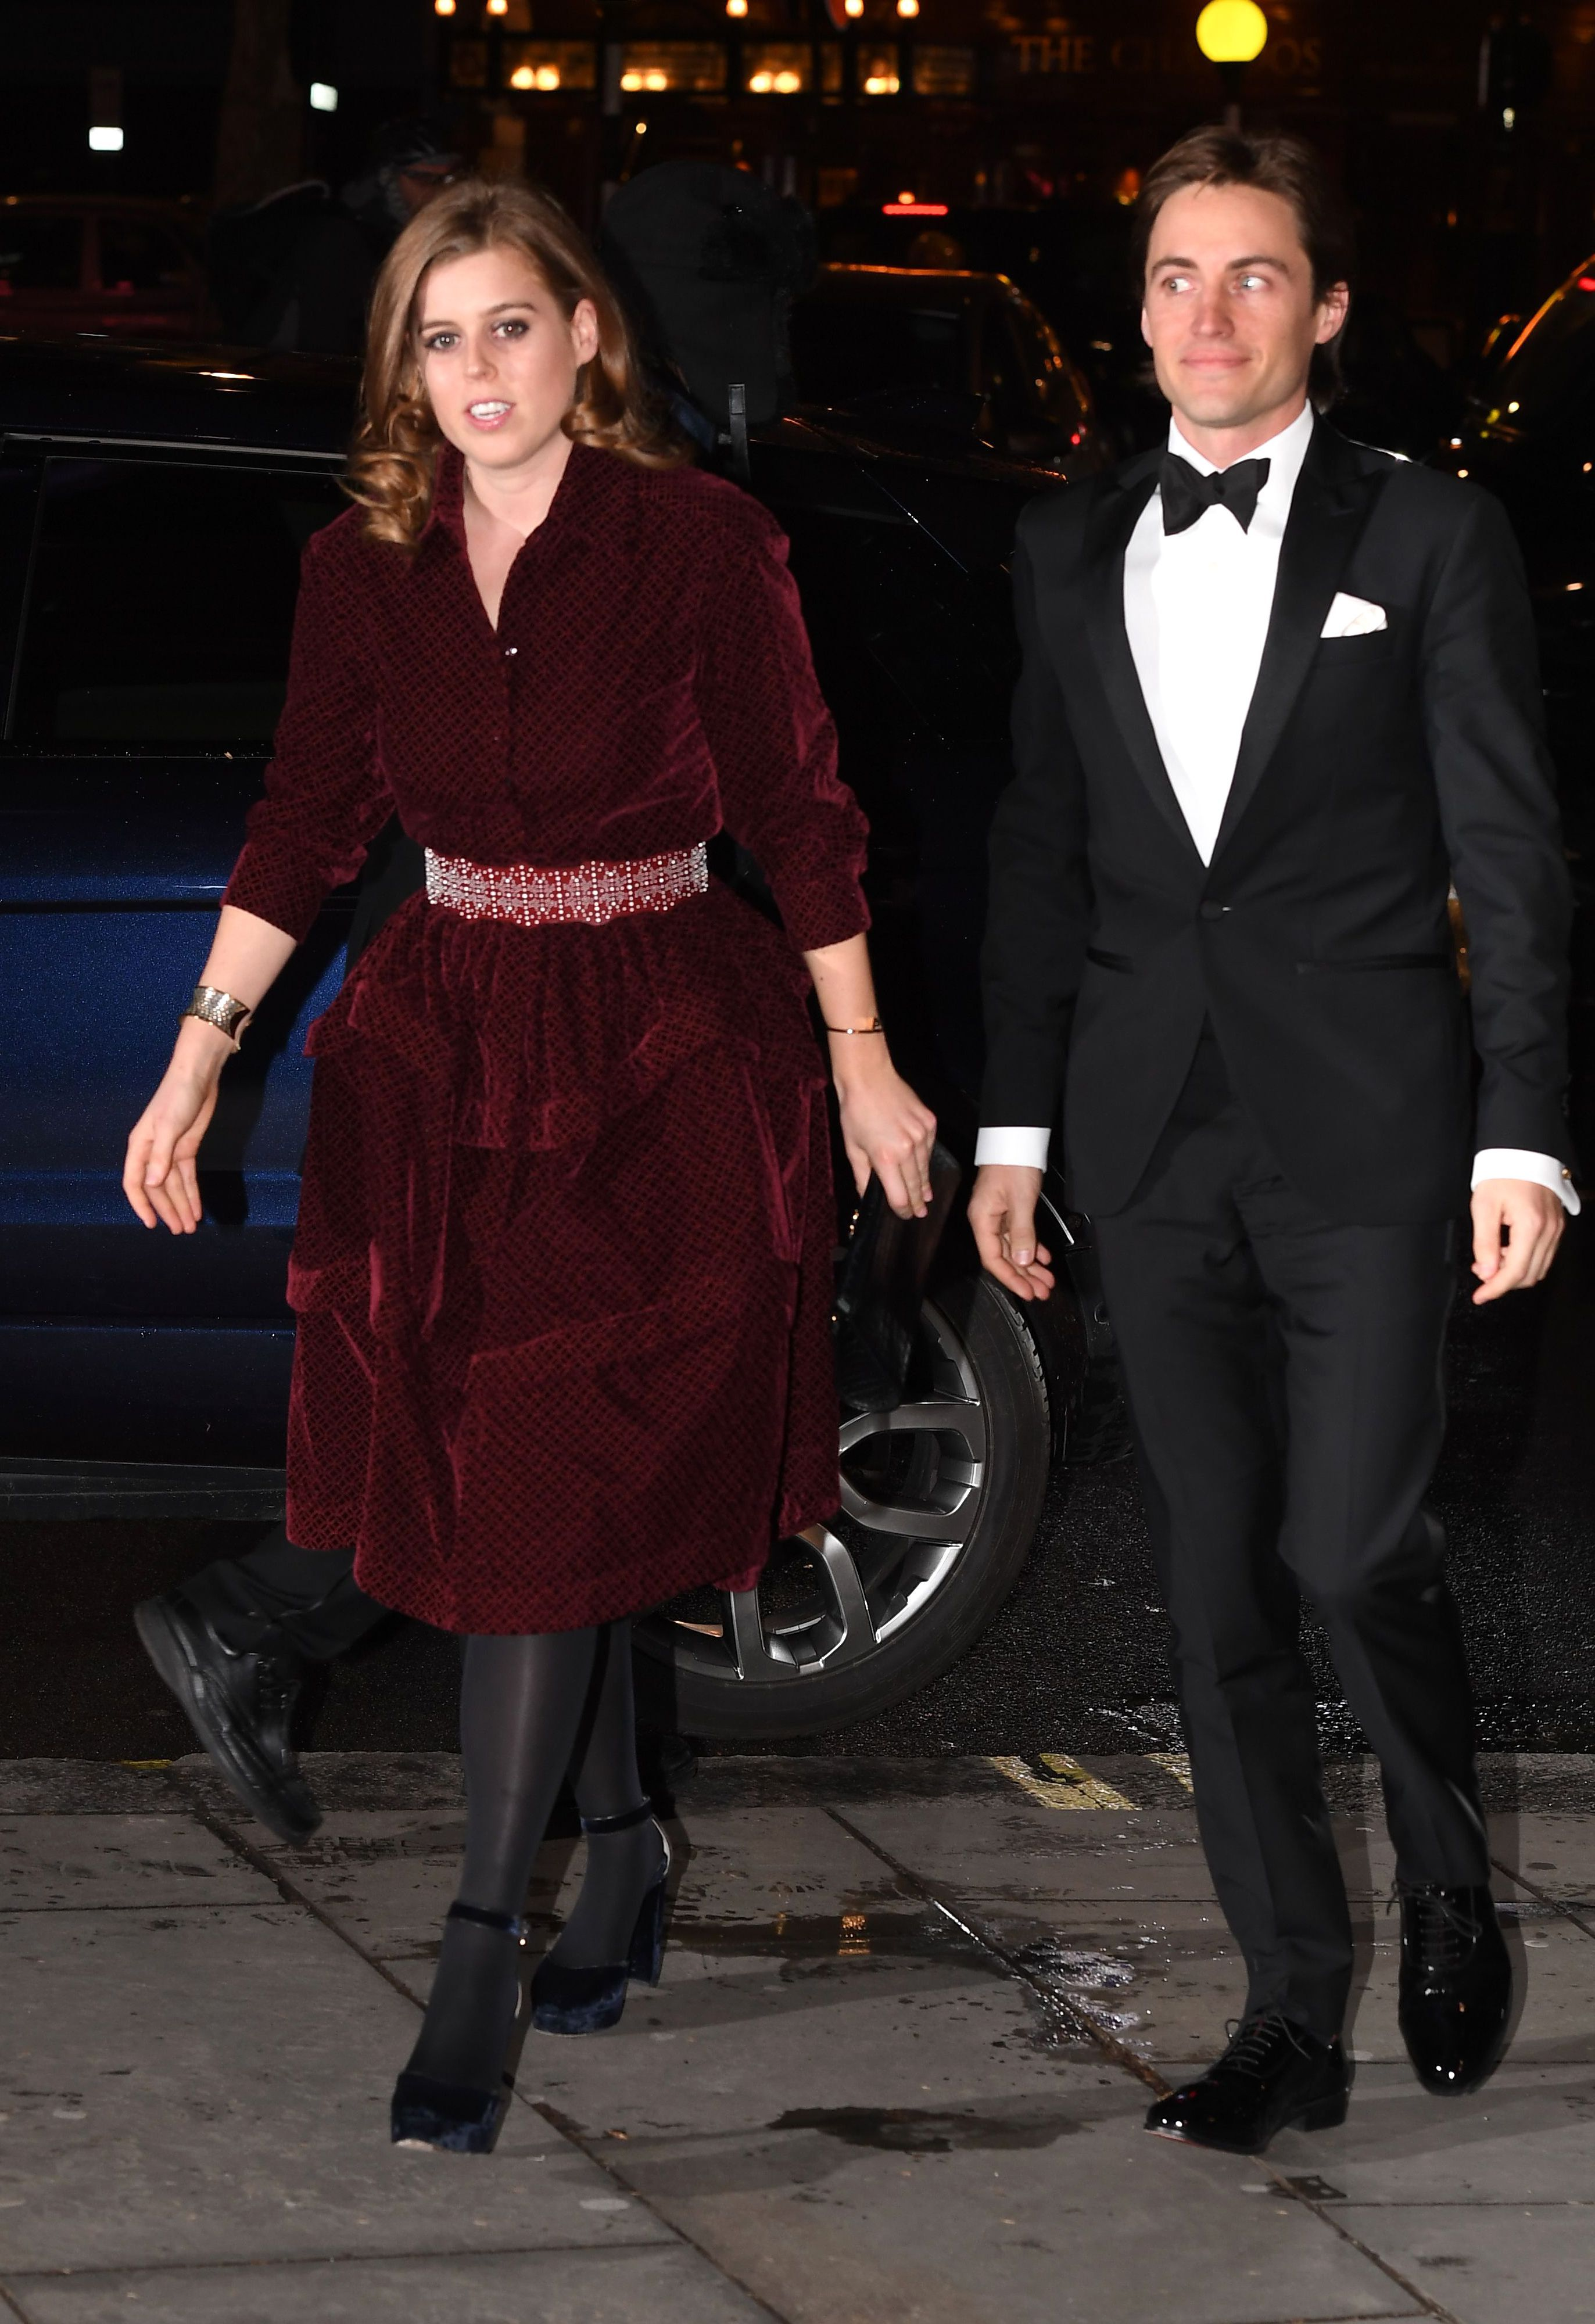 Princess Beatrice and Edoardo Mapelli Mozzi Just Made Their First Official Appearance as a Couple